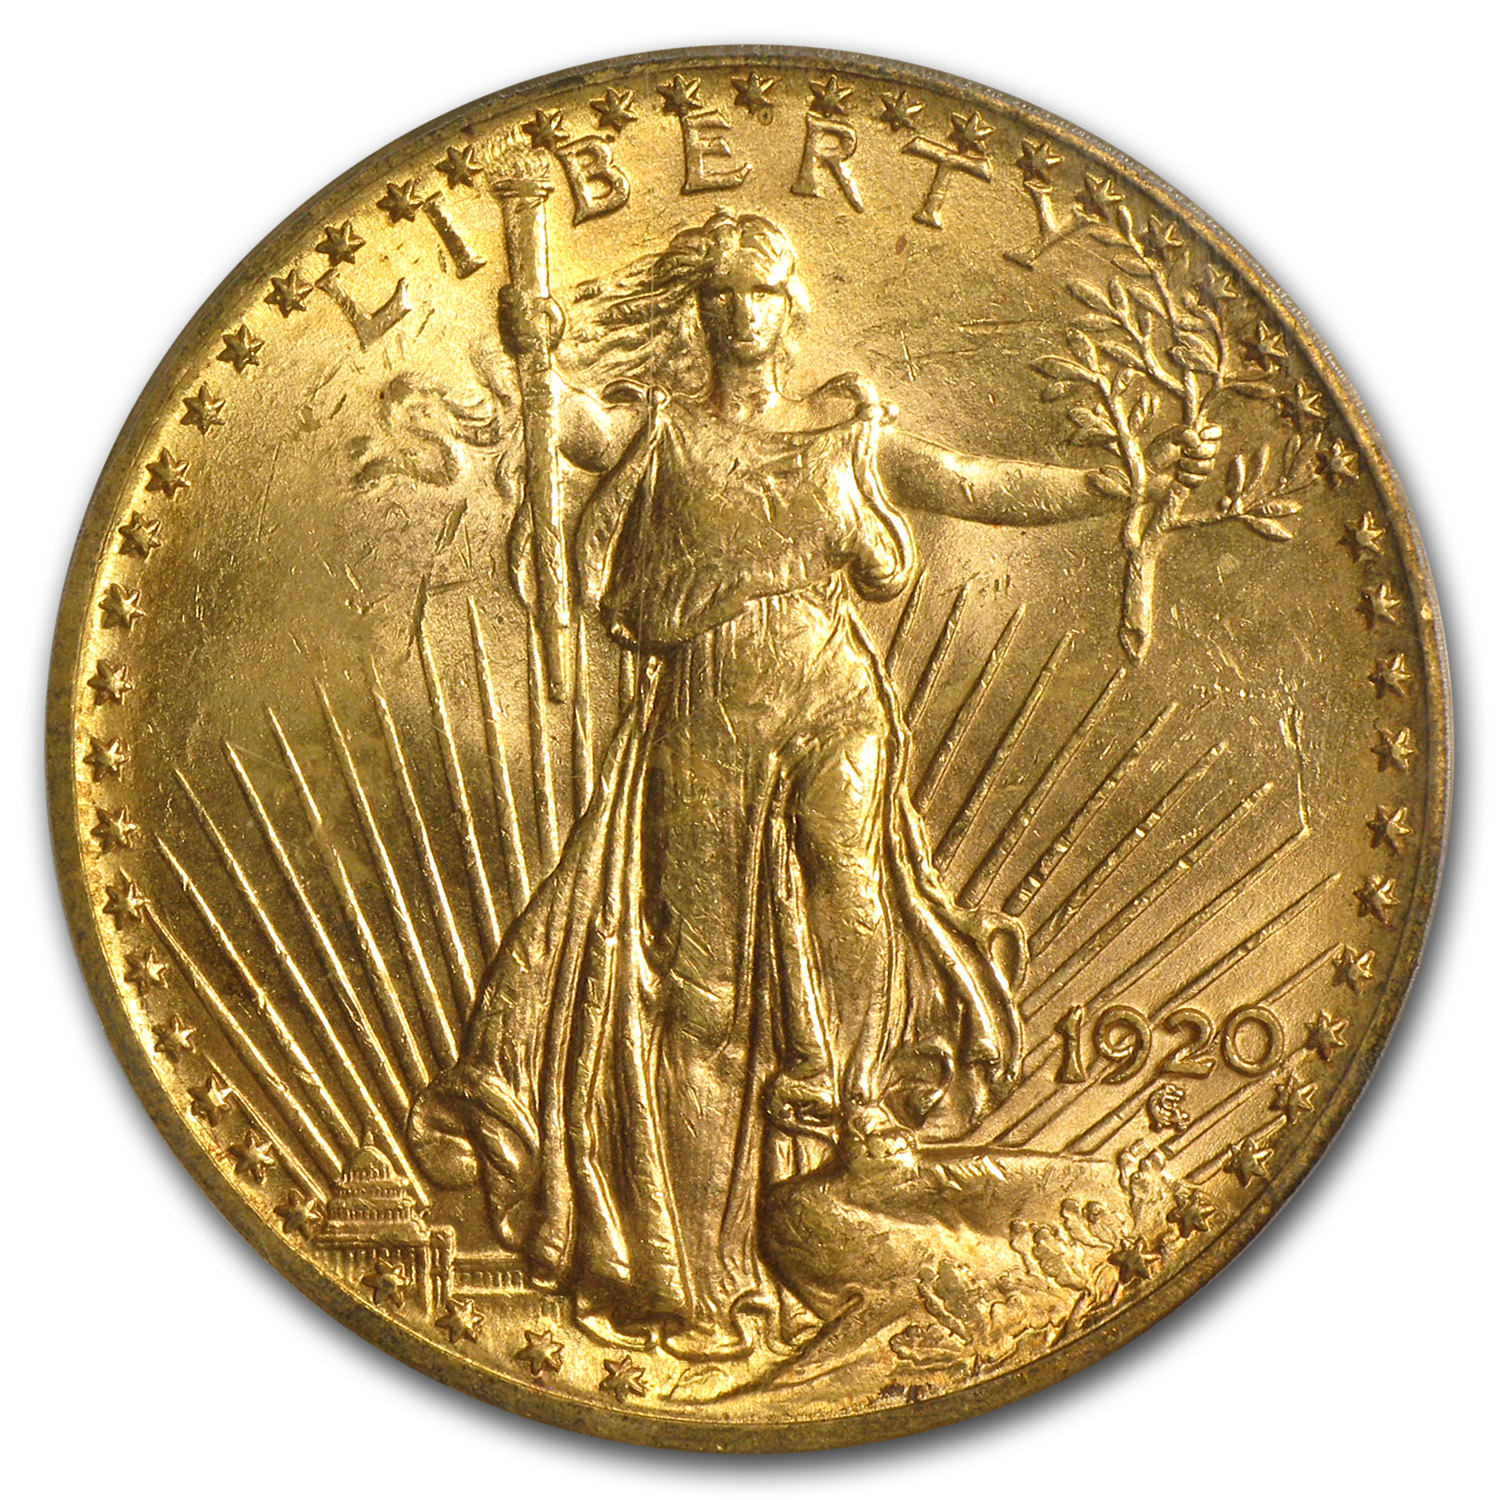 1920 $20 St. Gaudens Gold Double Eagle - MS-62 PCGS